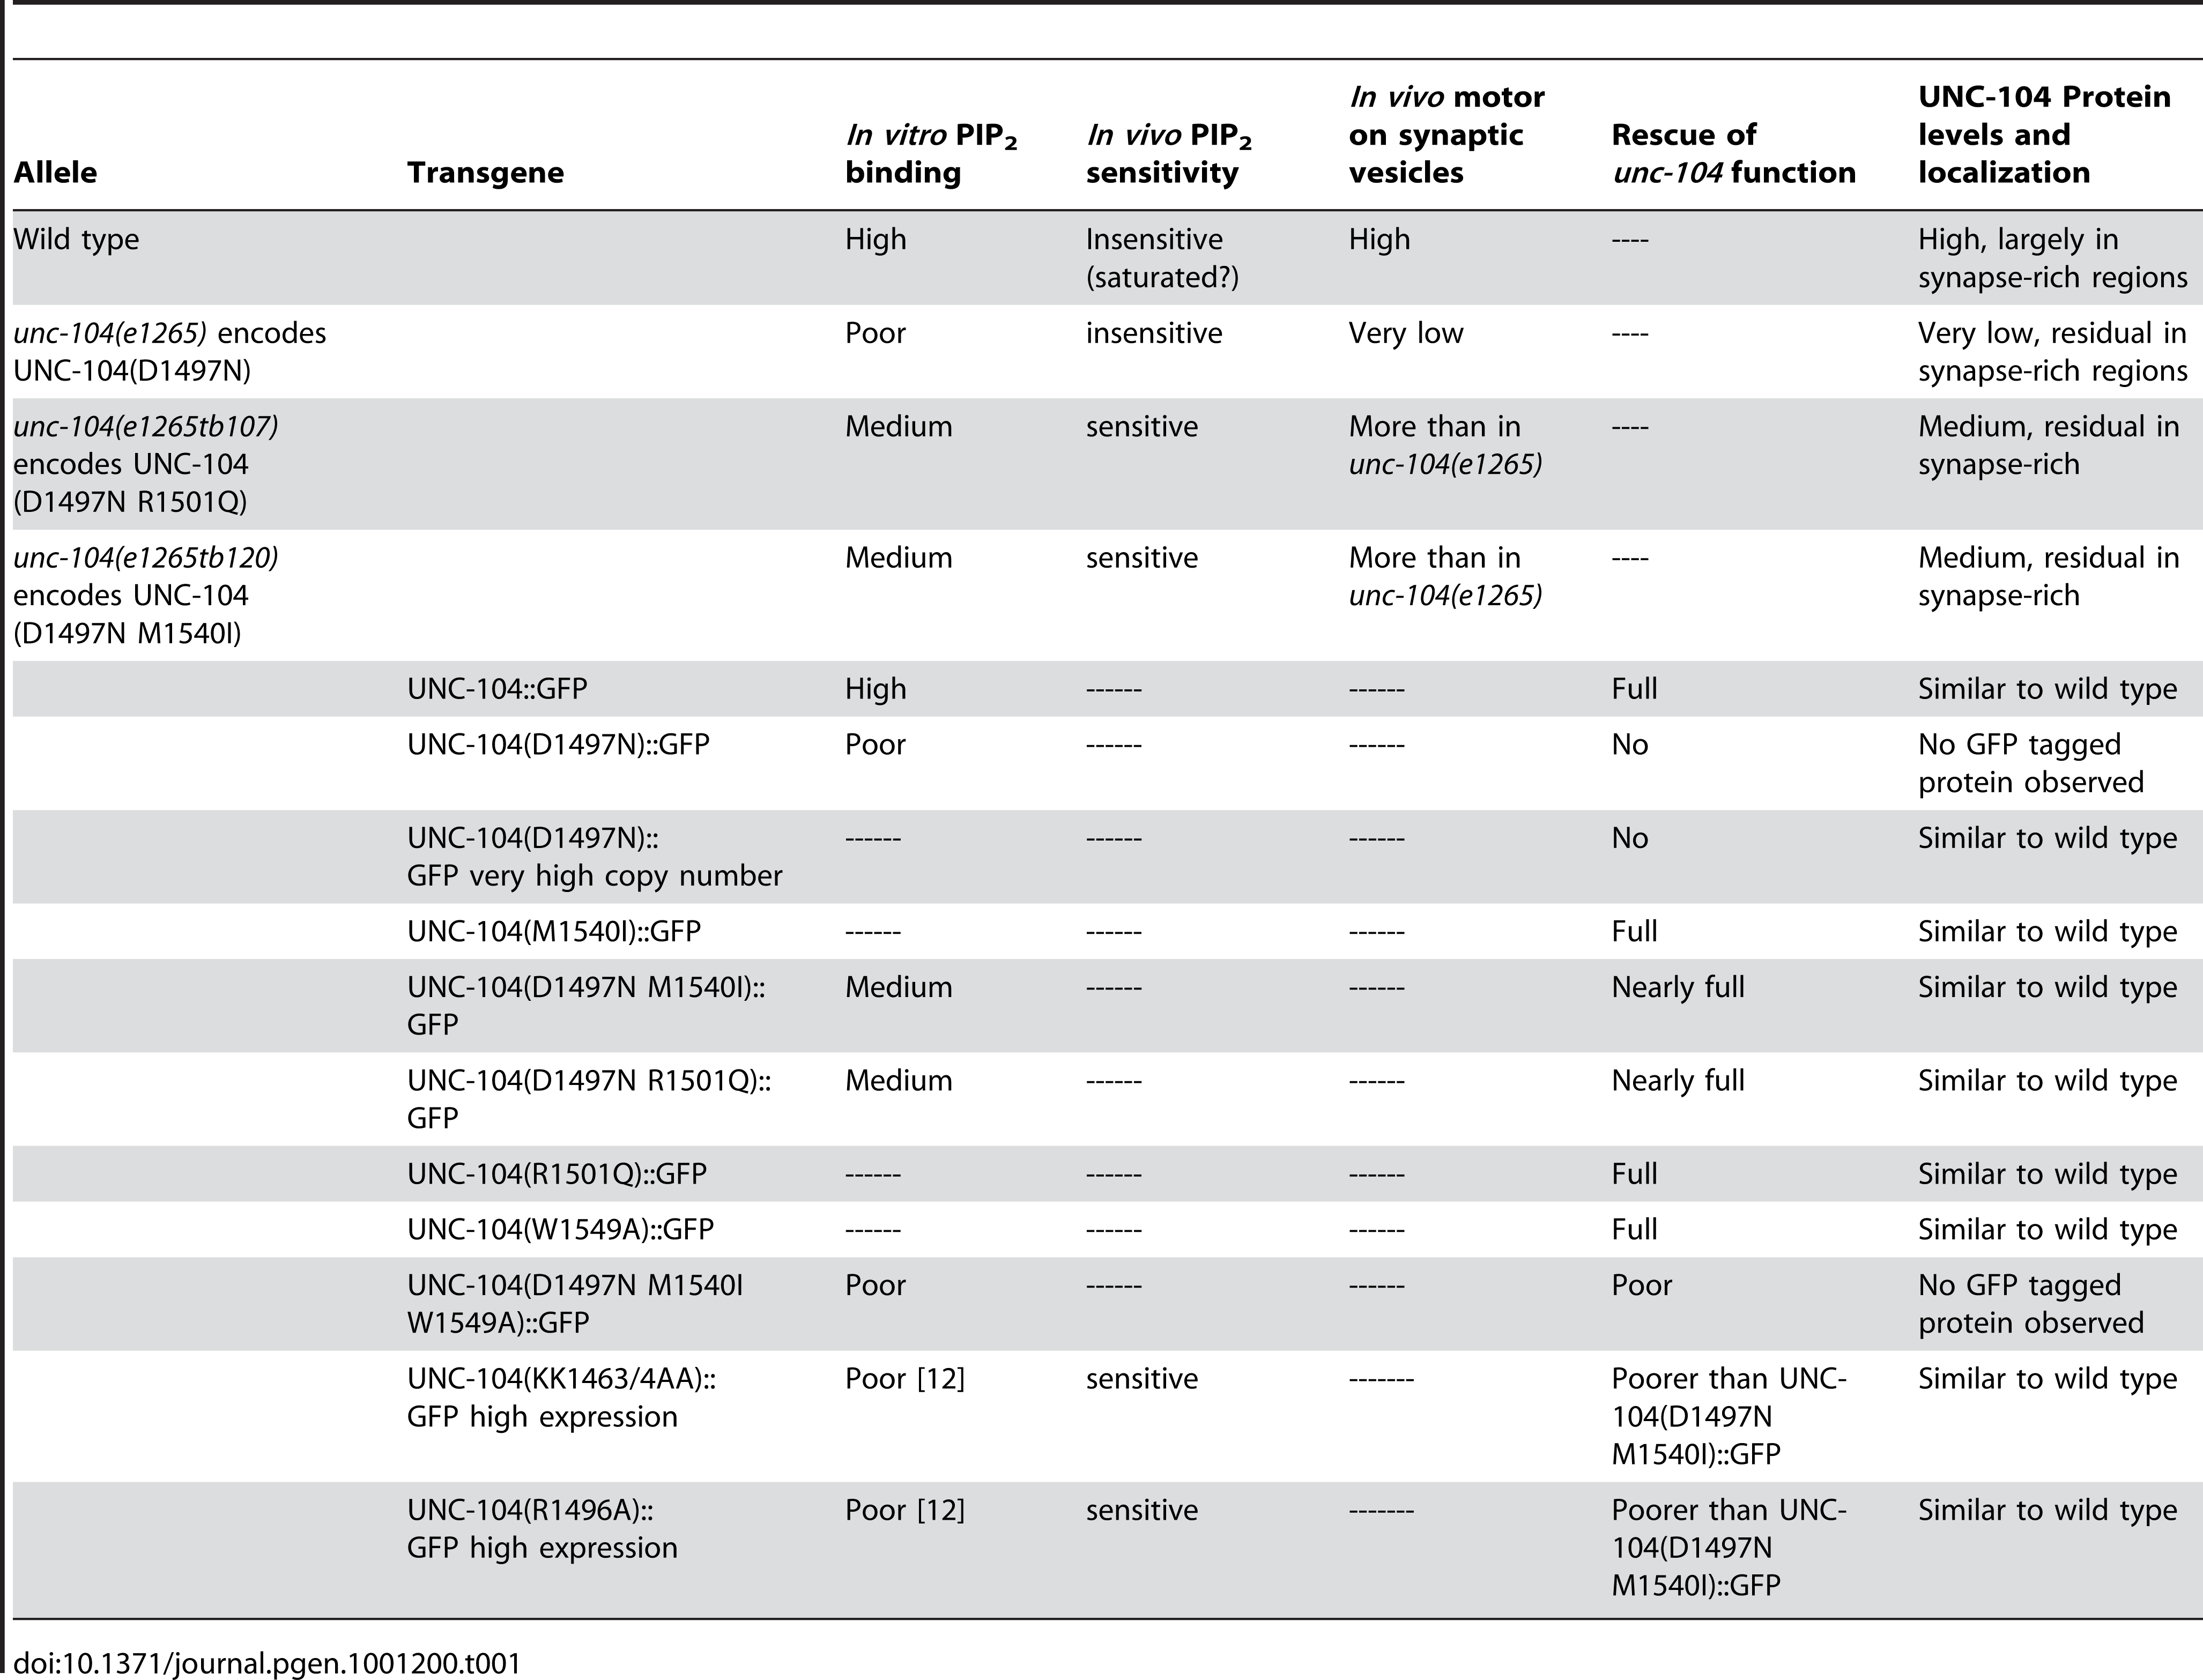 Summary of all UNC-104 alleles and transgenes and their behaviour in multiple assays.